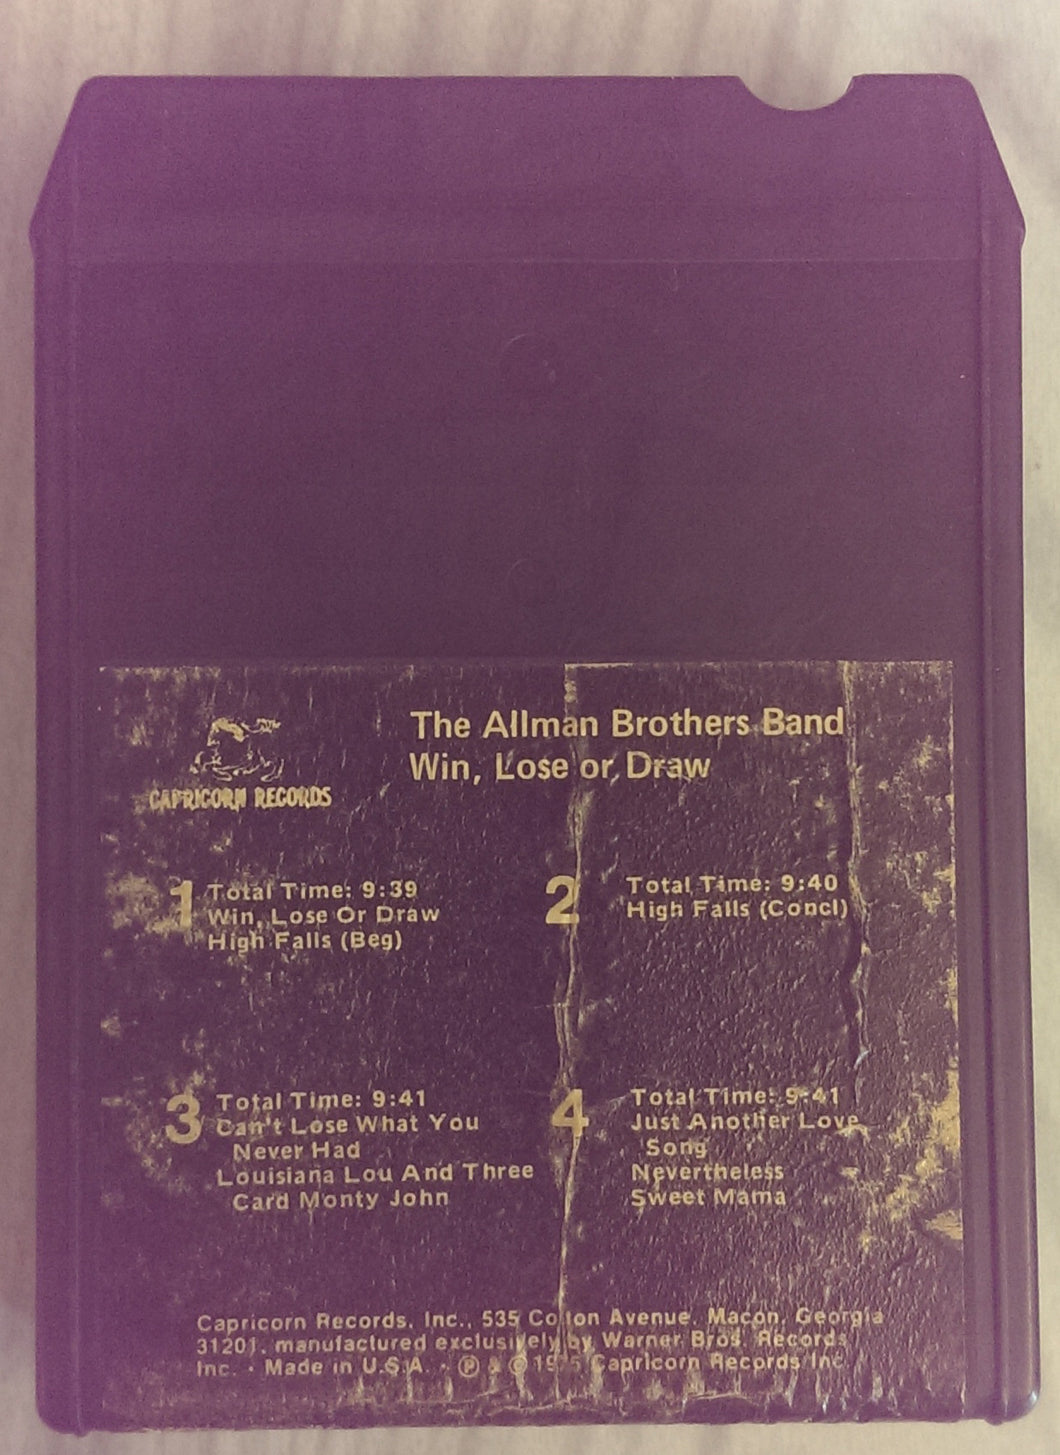 The Allman Brothers Band - Win, Lose or Draw